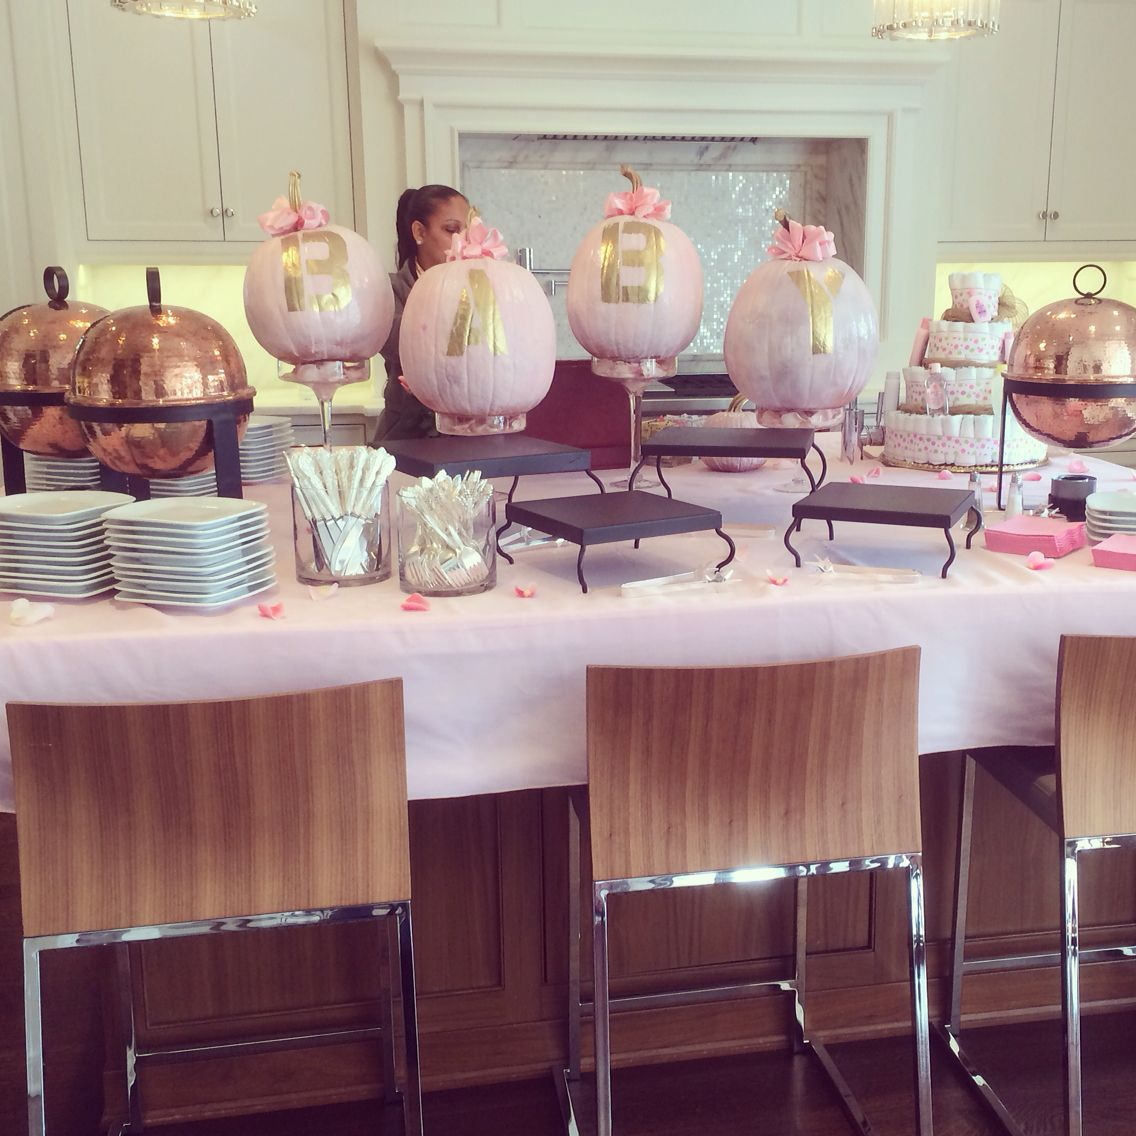 Display Baby Shower: Baby Shower Food Display With Pumpkin Decor Colors Were